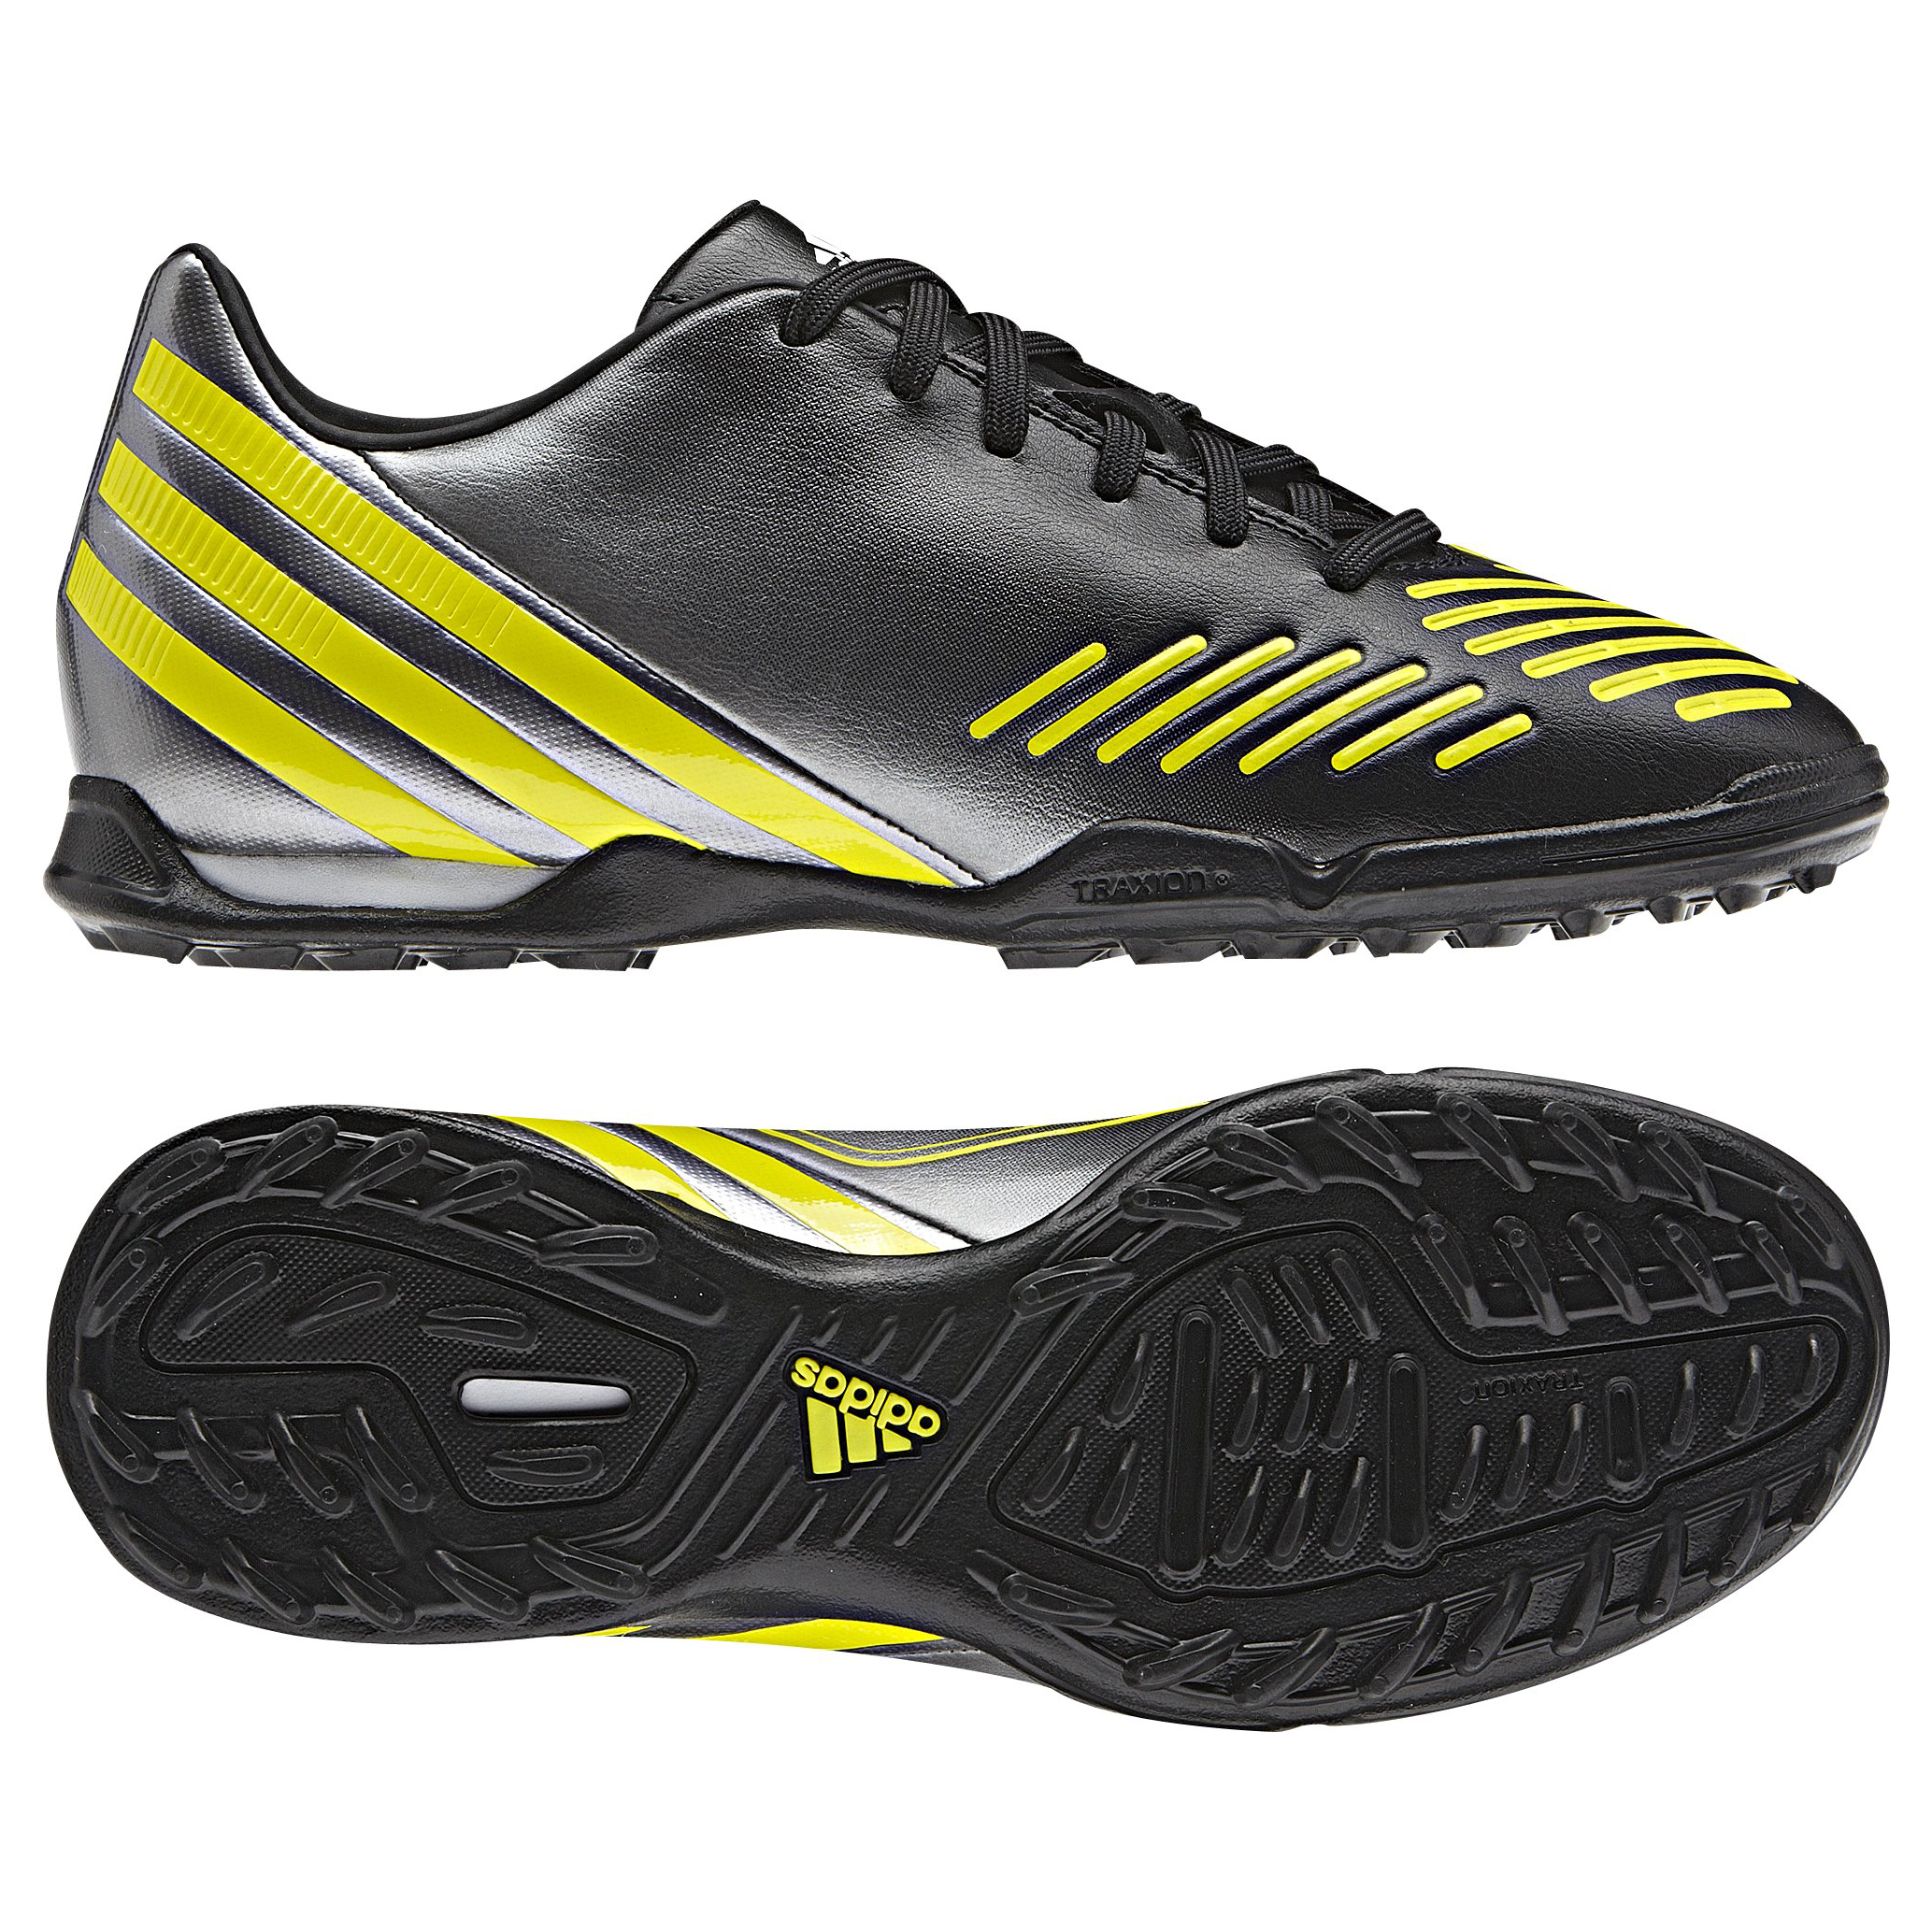 Adidas Predator Absolado LZ TRX Astro Turf Trainers - Black/Lab Lime/Neo Iron Met - Kids